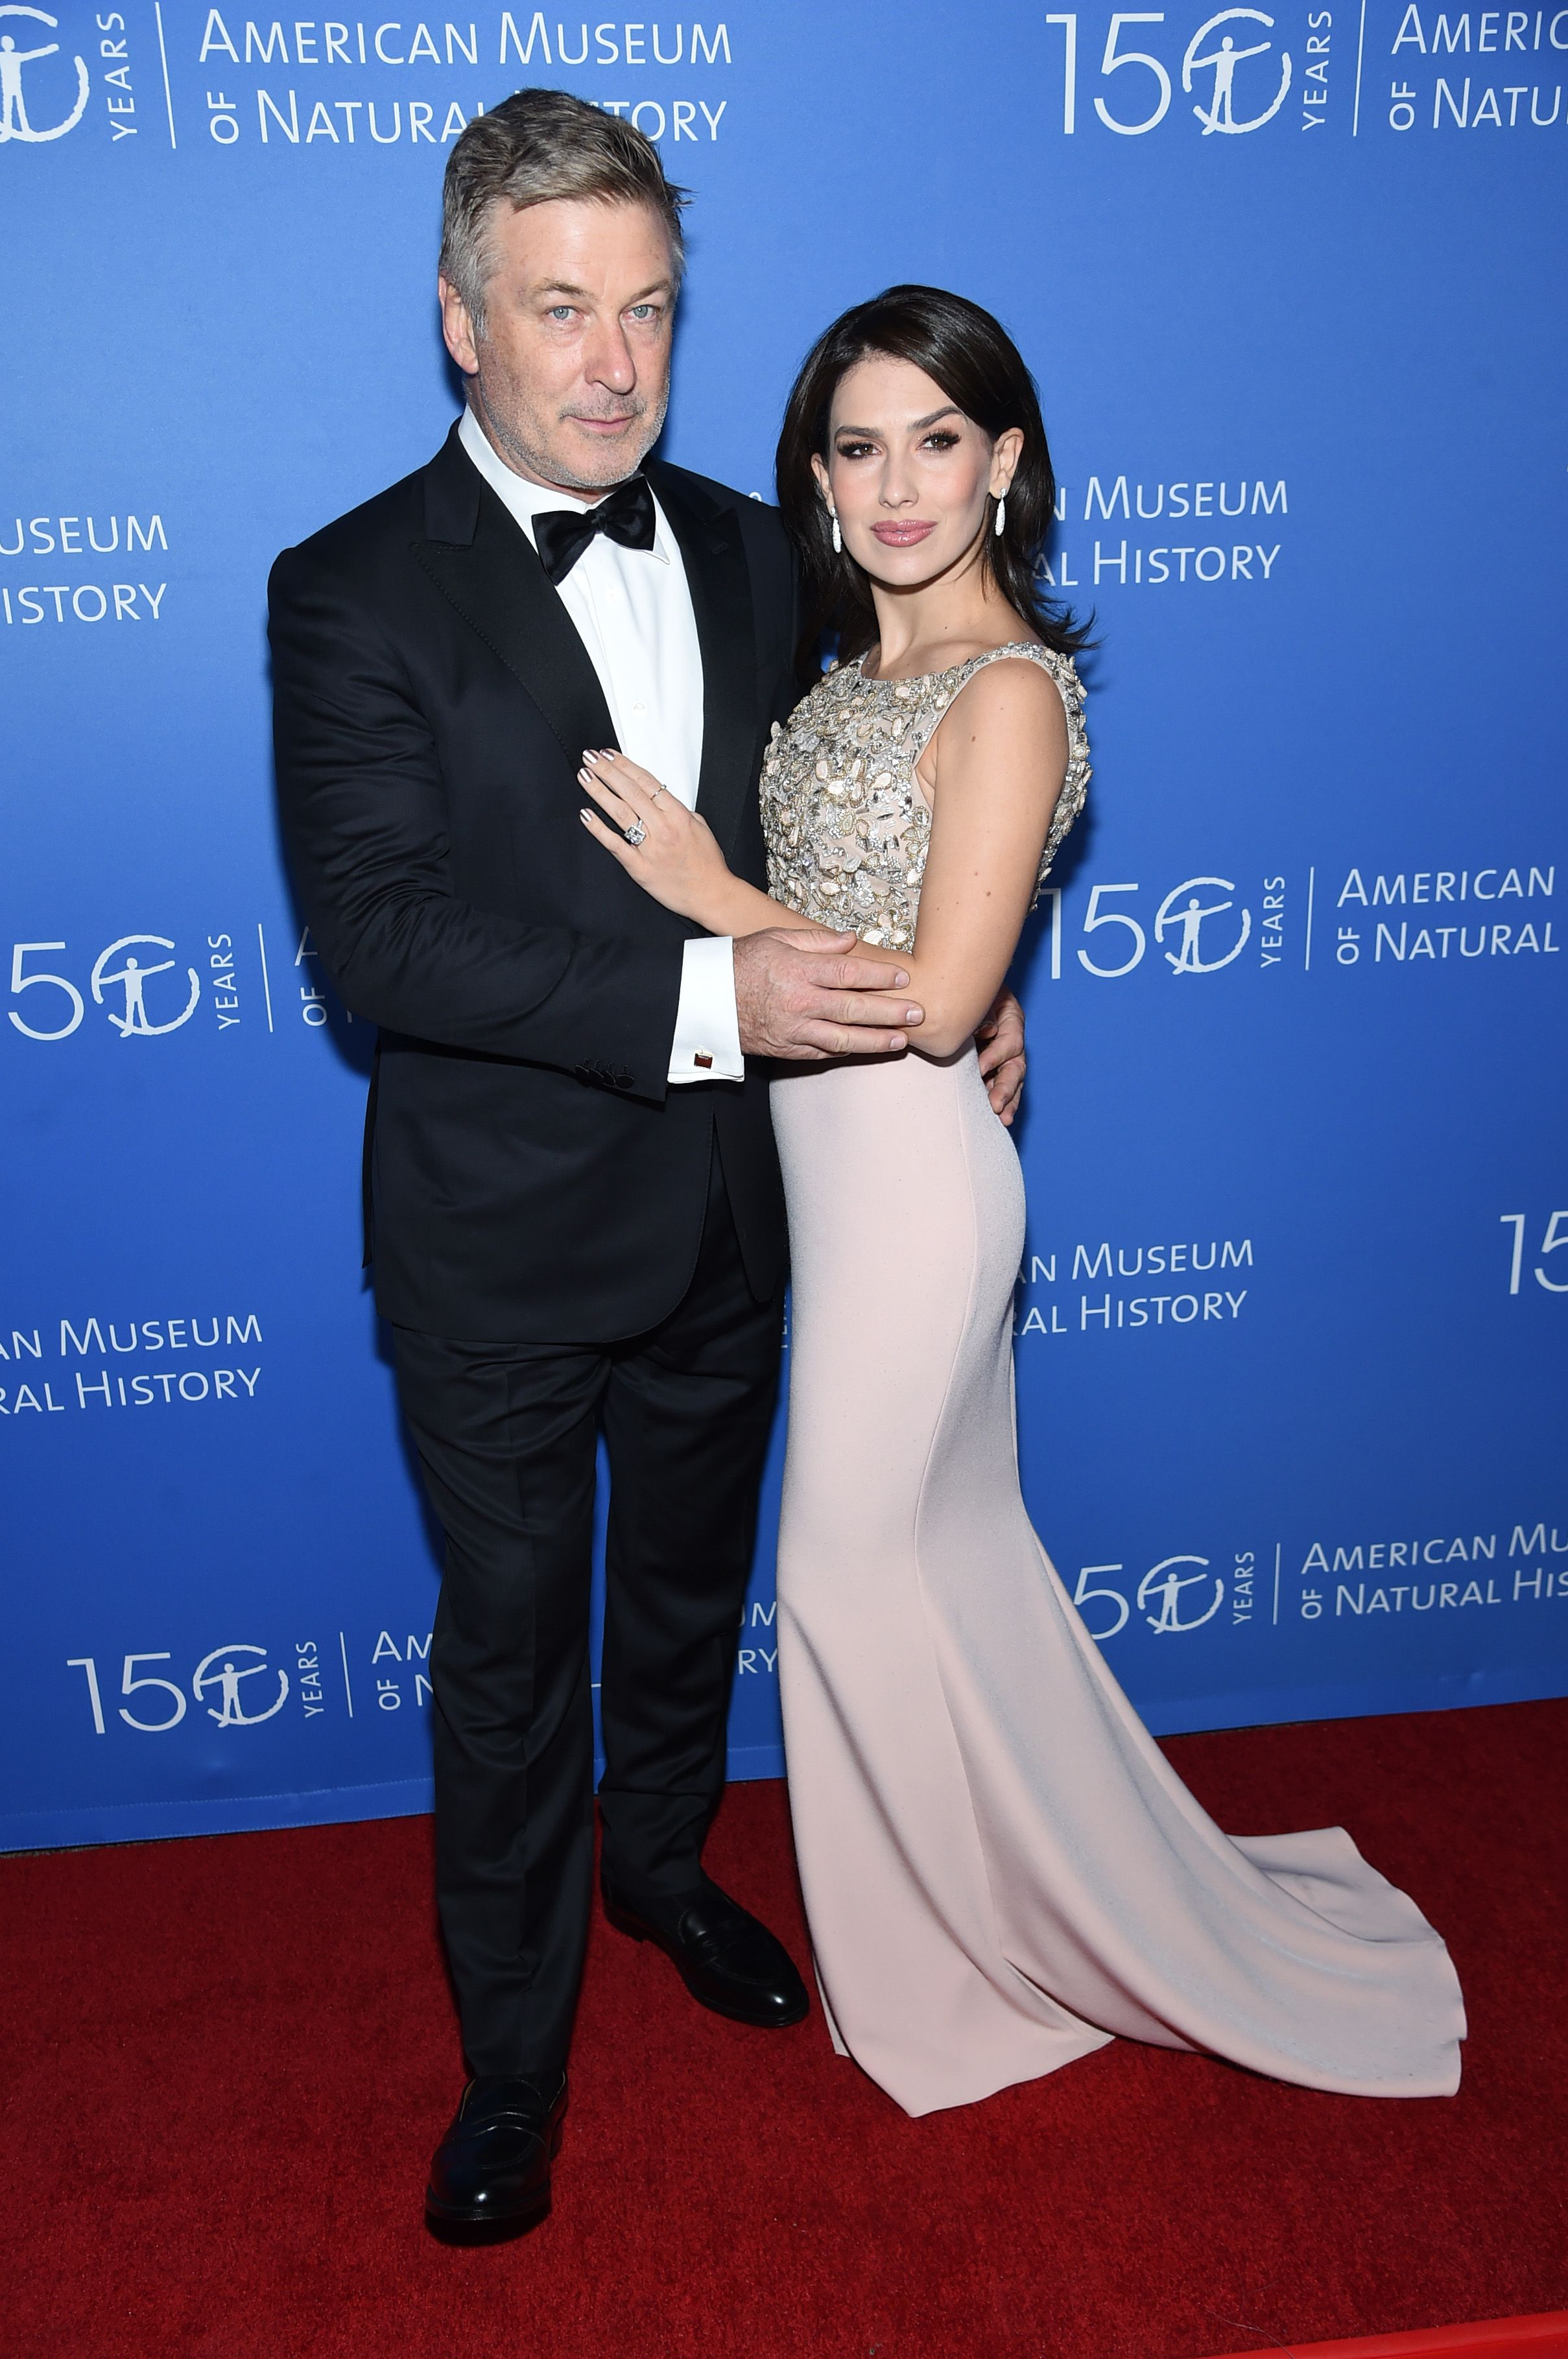 Alec and Hilaria Baldwin attend the American Museum Of Natural History Gala on November 21, 2019, in New York City. | Source: Getty Images